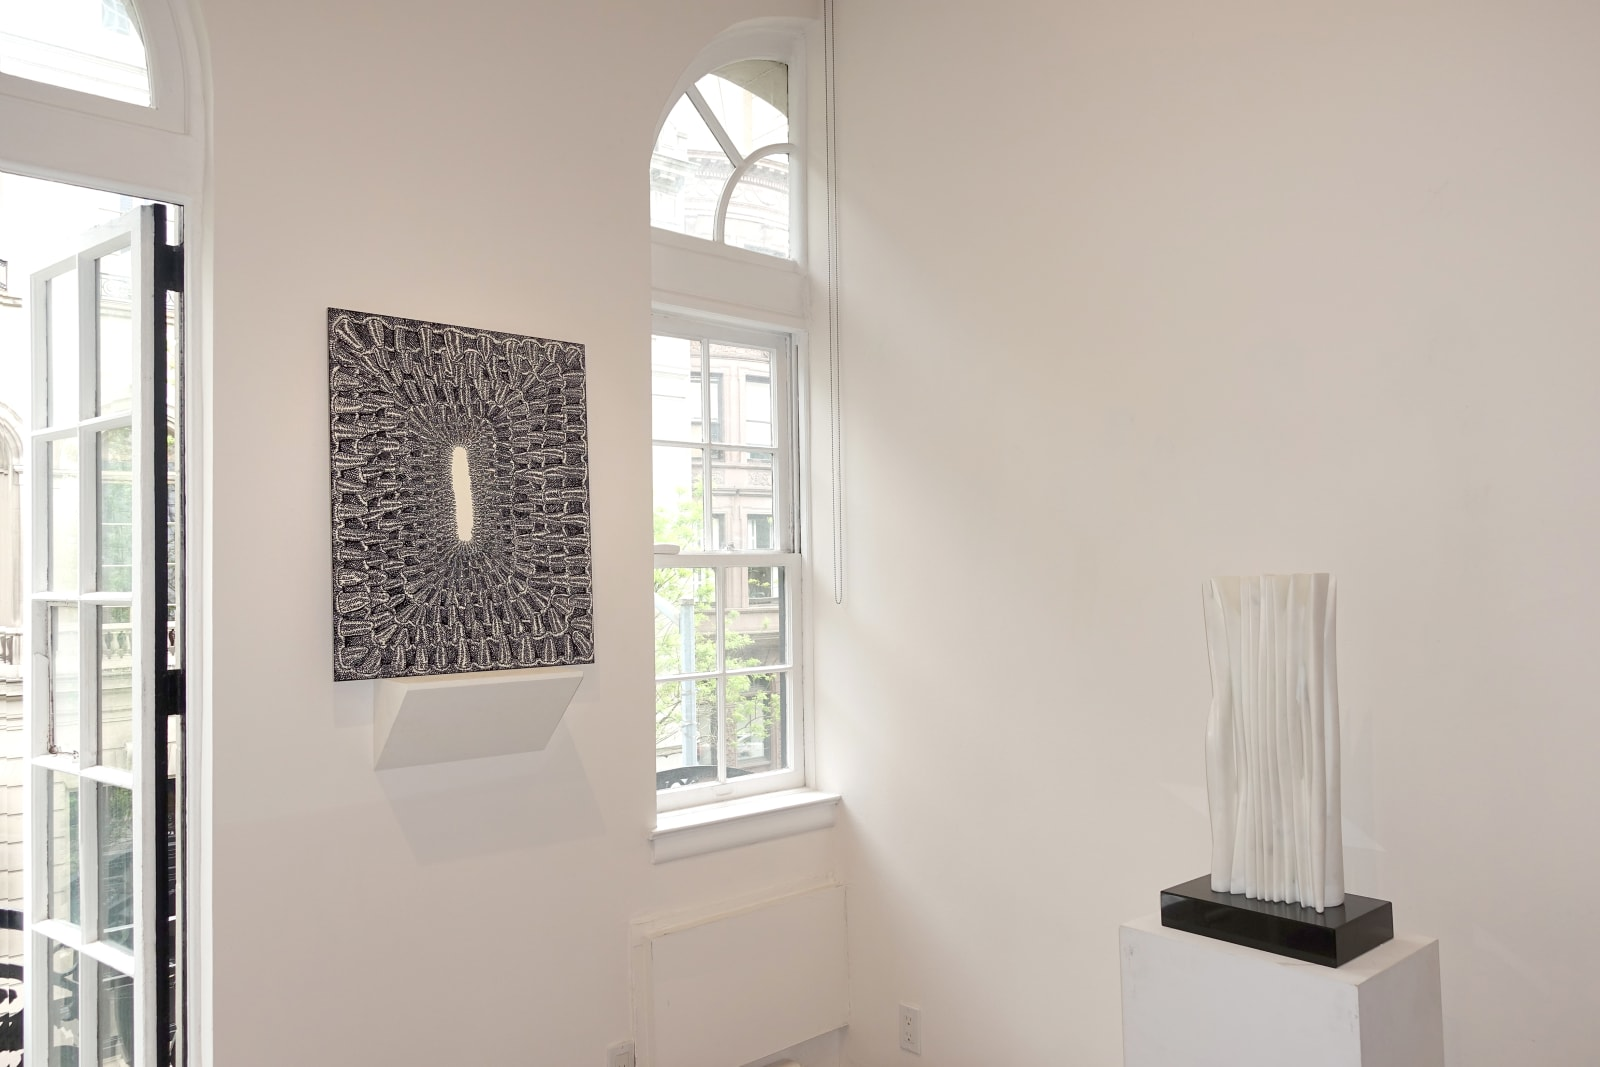 Installation view: In the Absence of Color: Artists Working in Black and White